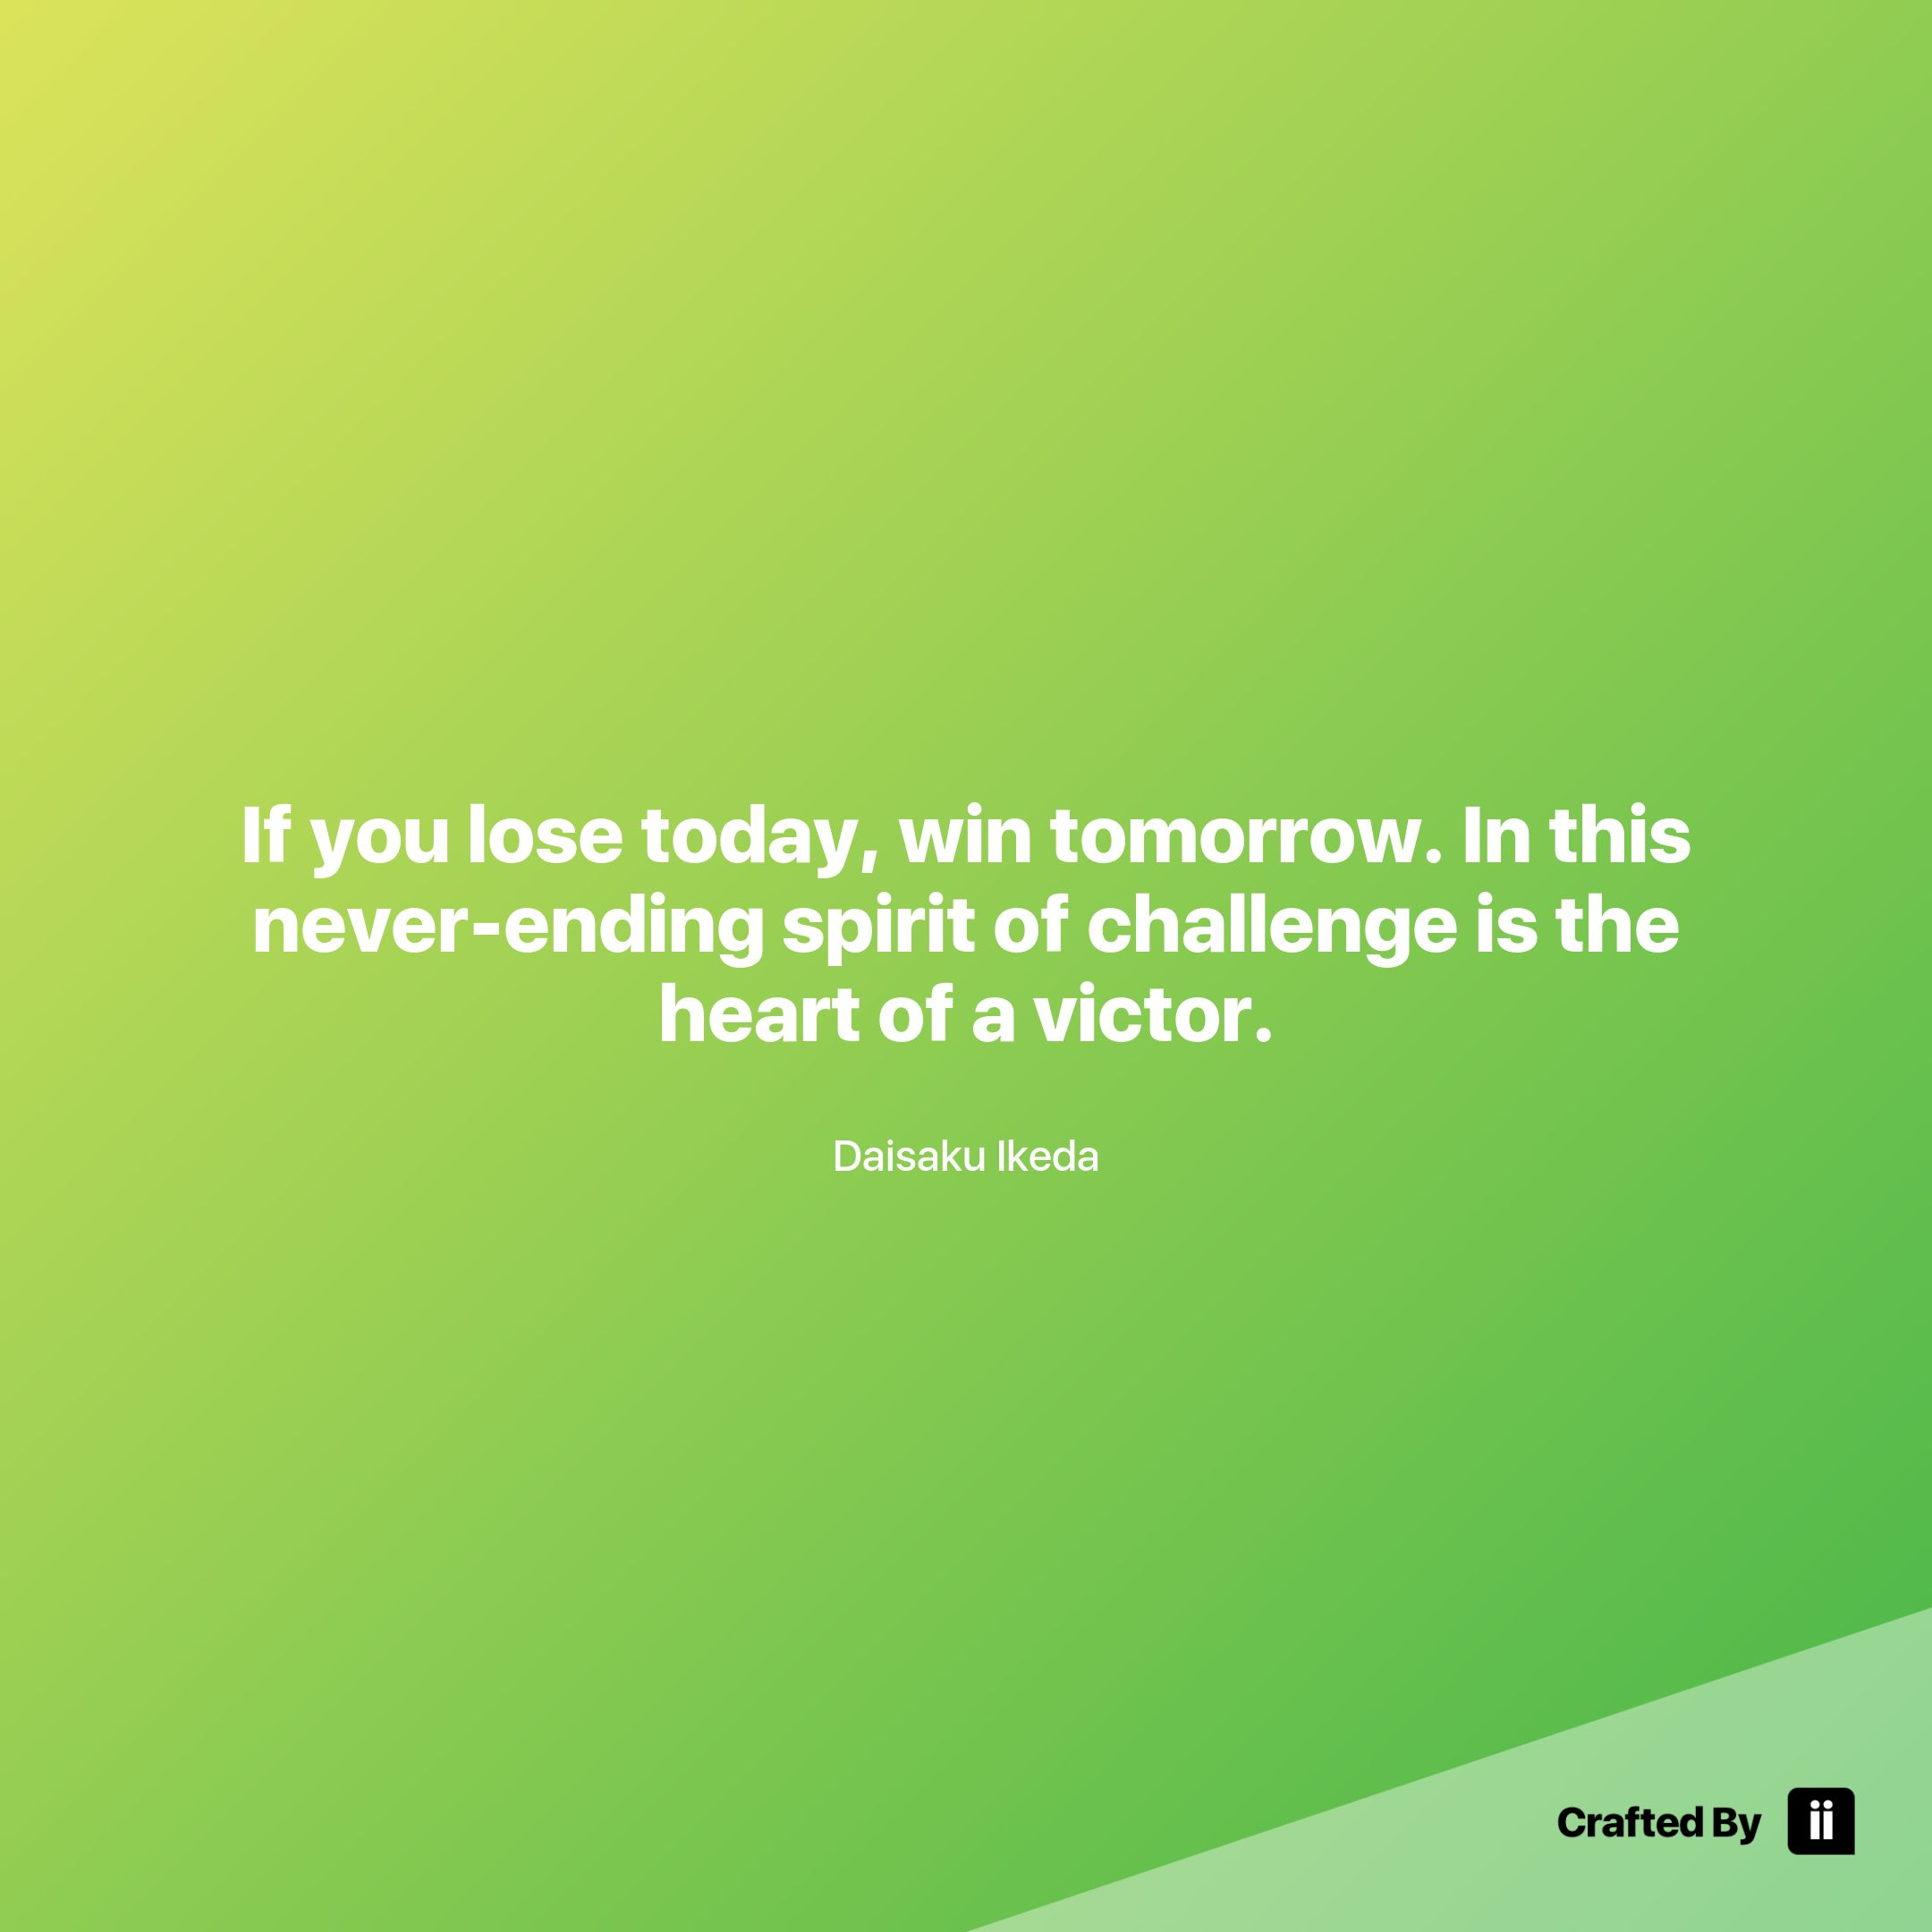 Win Or Lose Quotes If You Lose Today Win Tomorrowin This Neverending Spirit Of